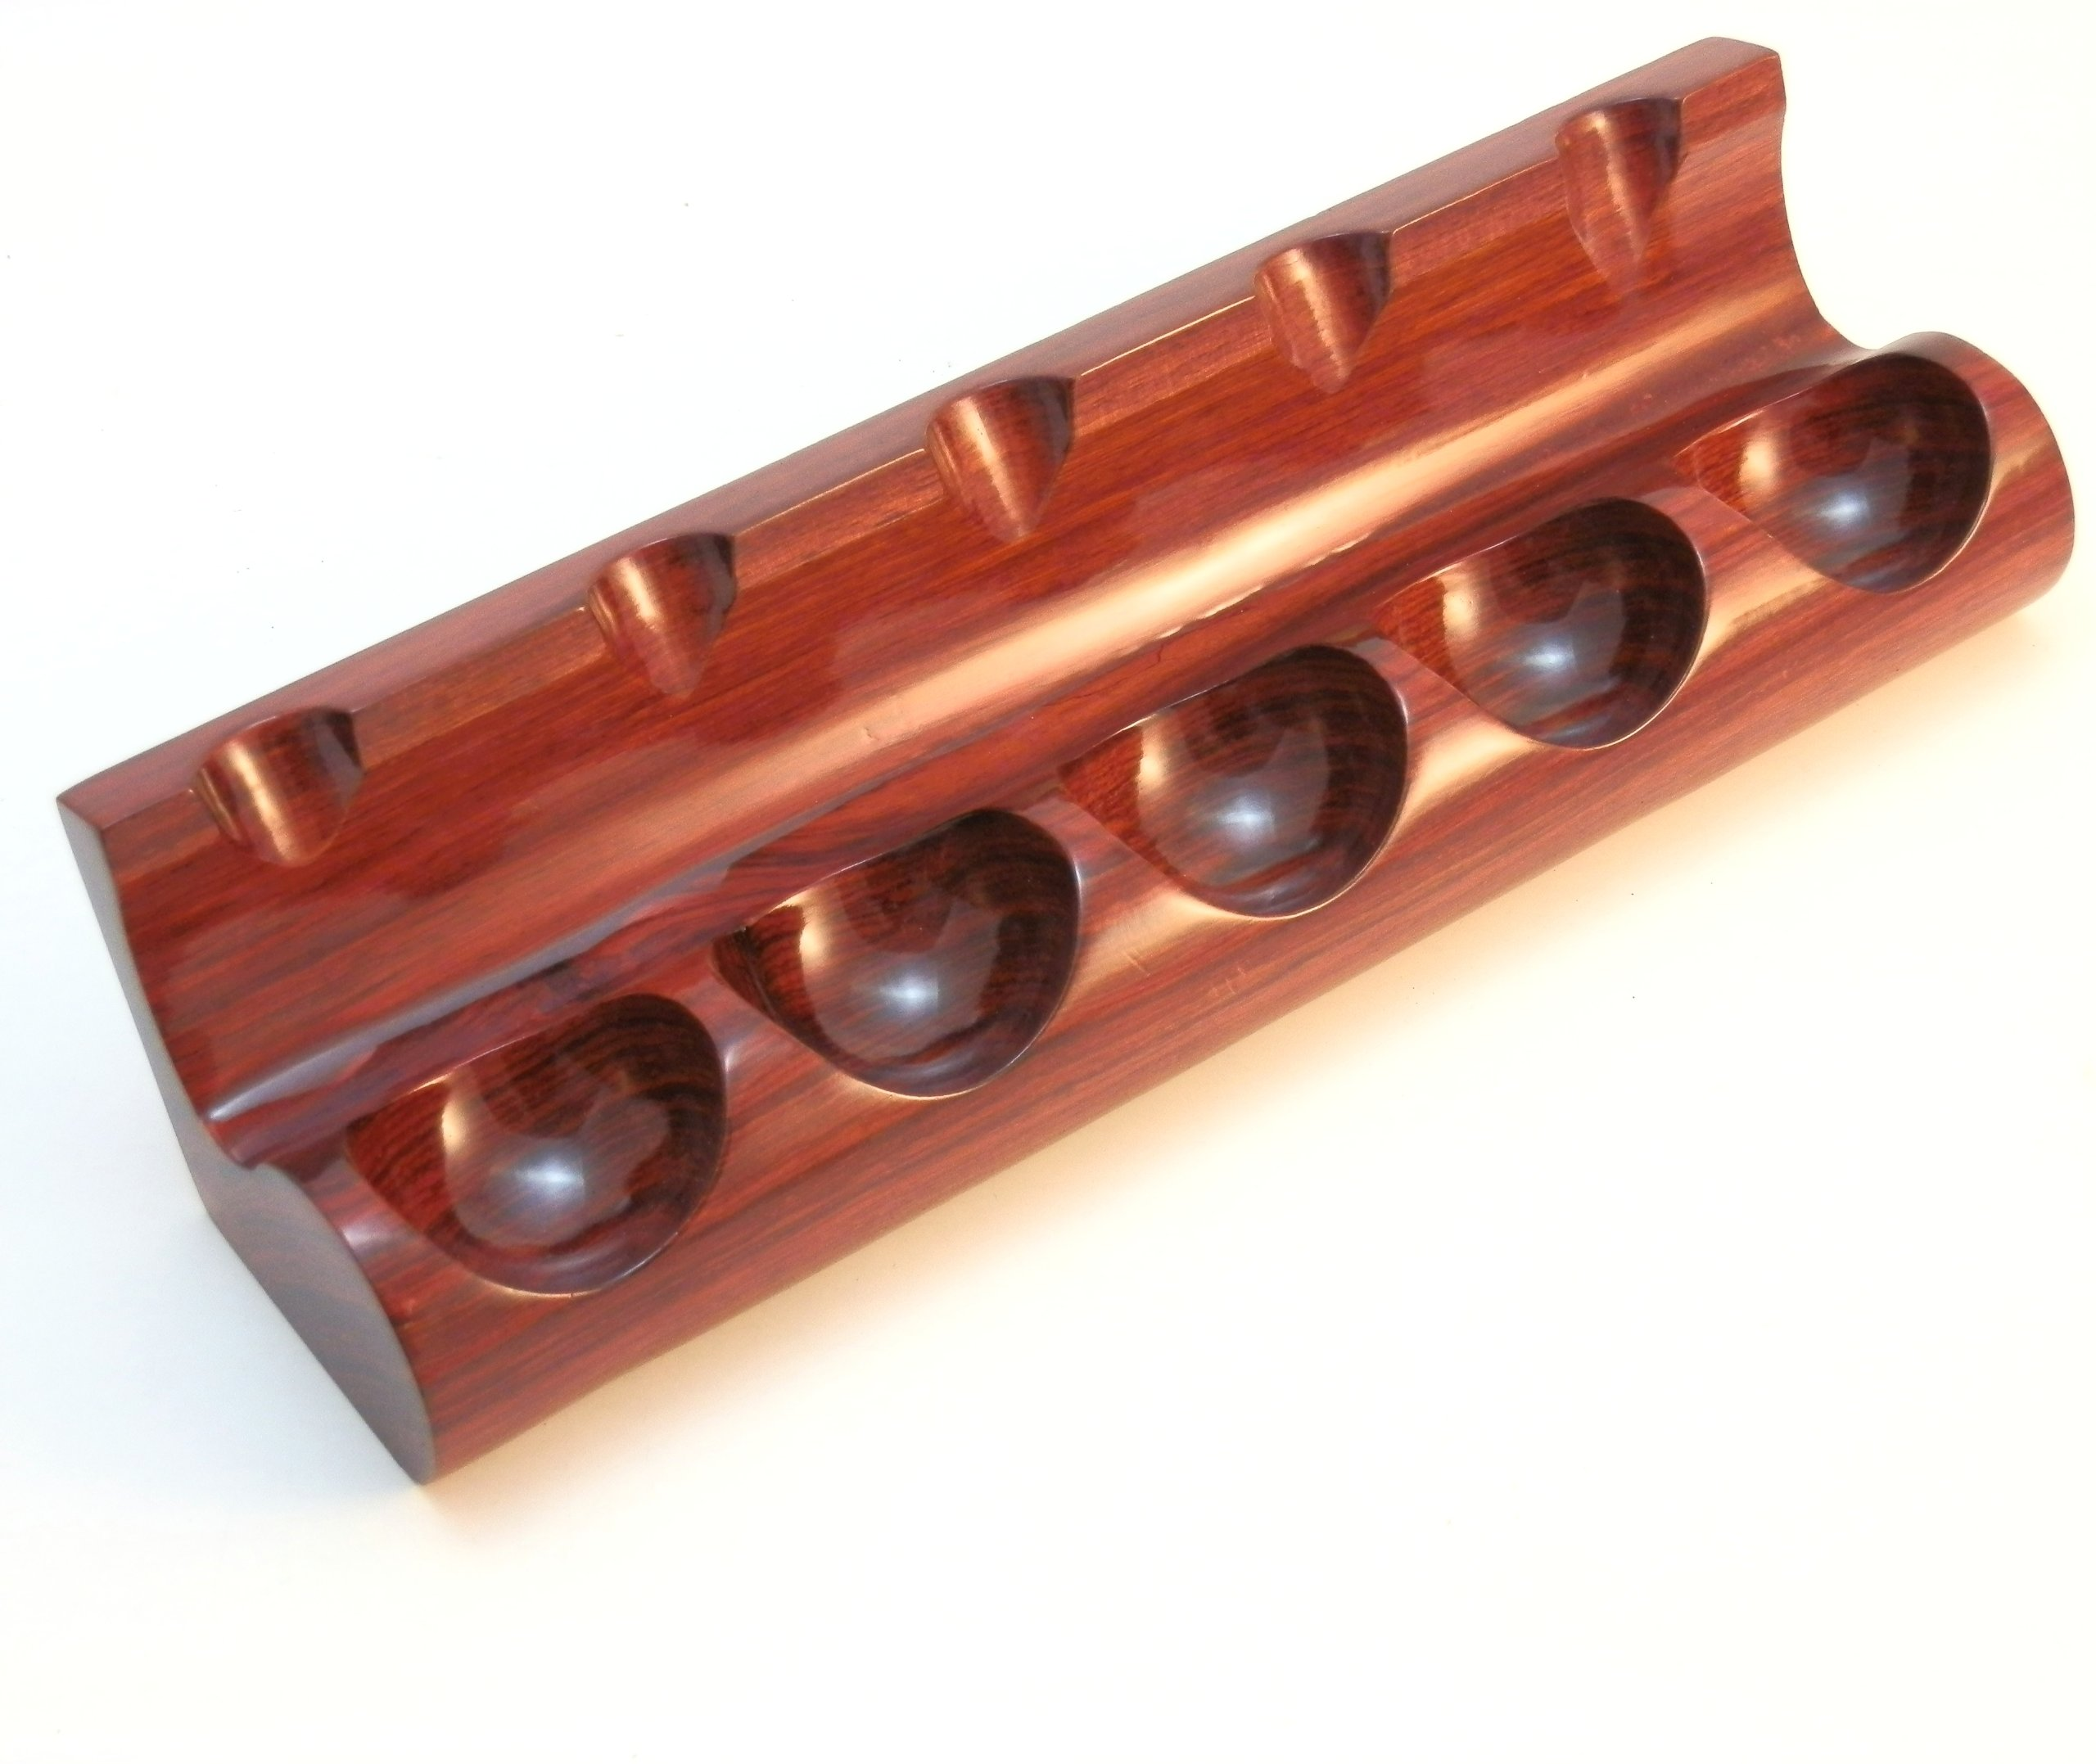 Mr. Brog Tobacco Pipe Rack - Rod Series - 5 by Mr. Brog